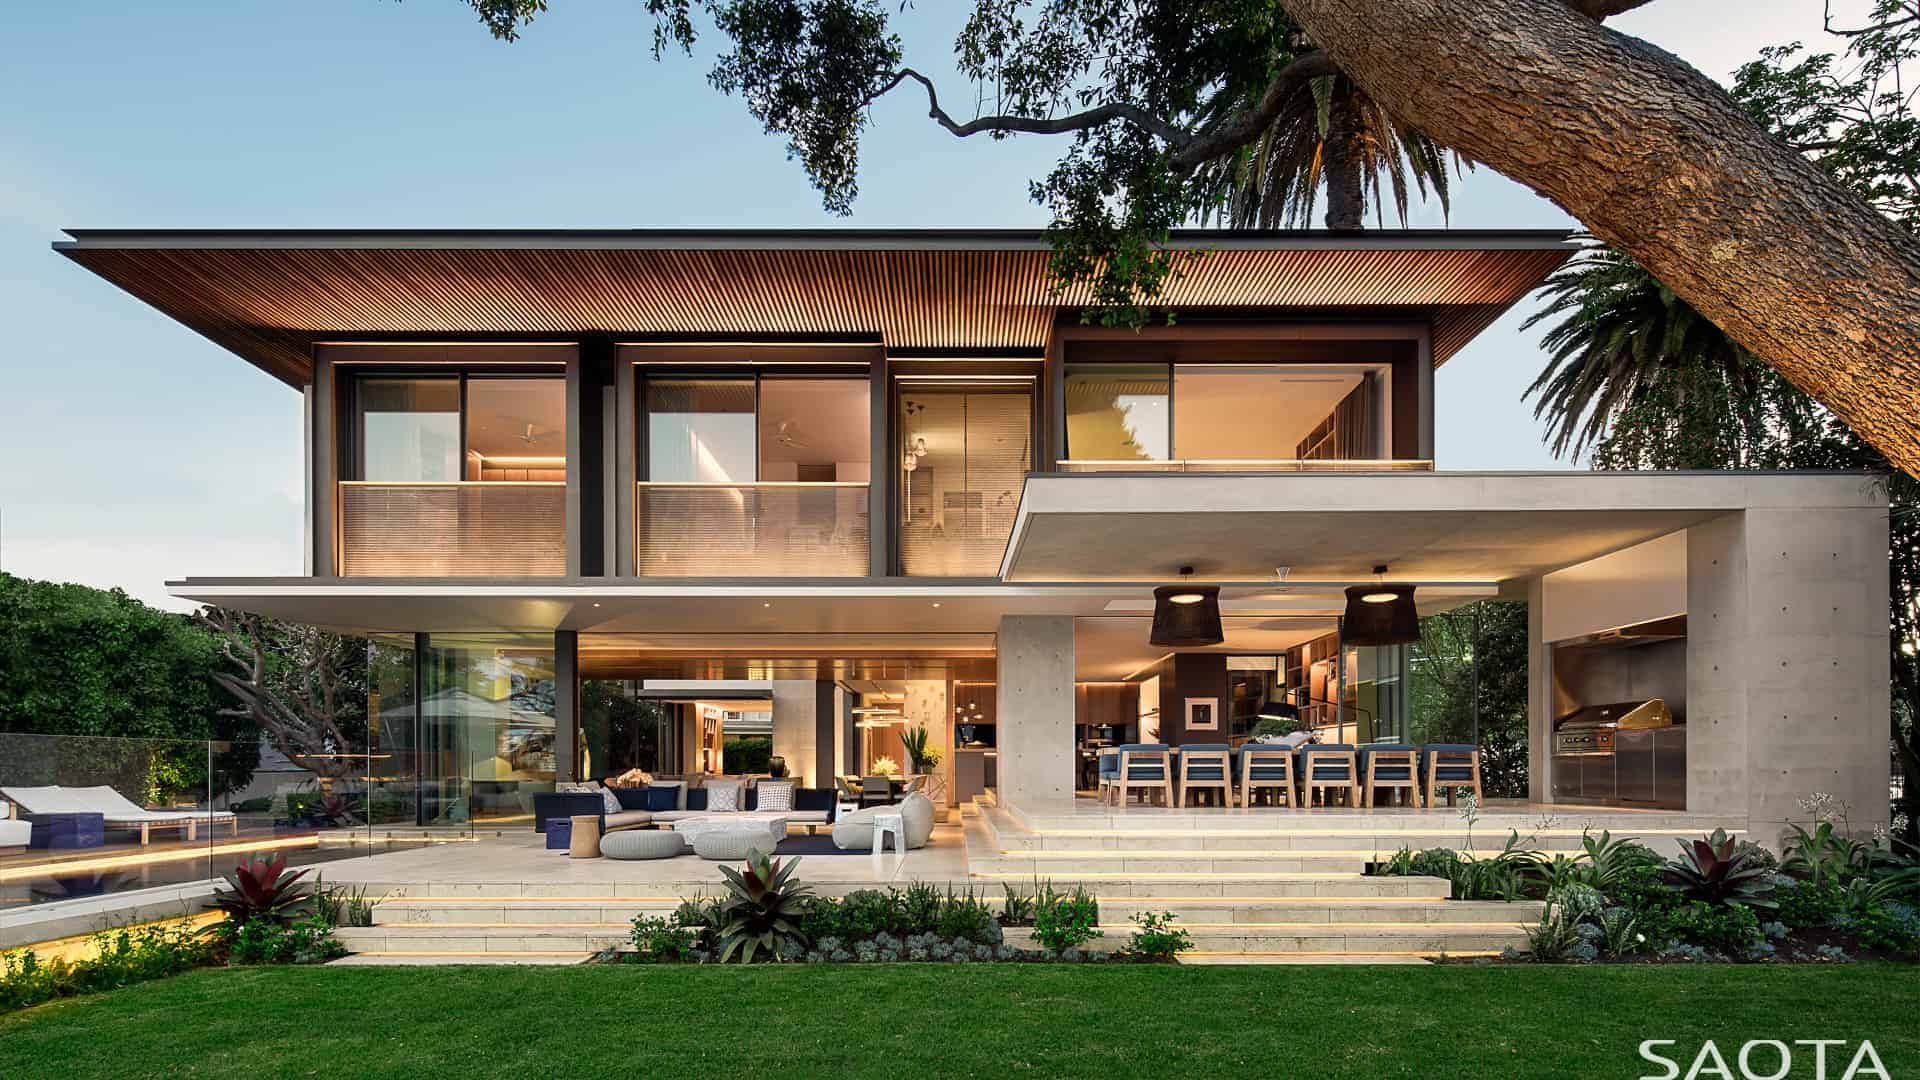 A large contemporary house designed by SAOTA. It features a peaceful garden area and a swimming pool area.